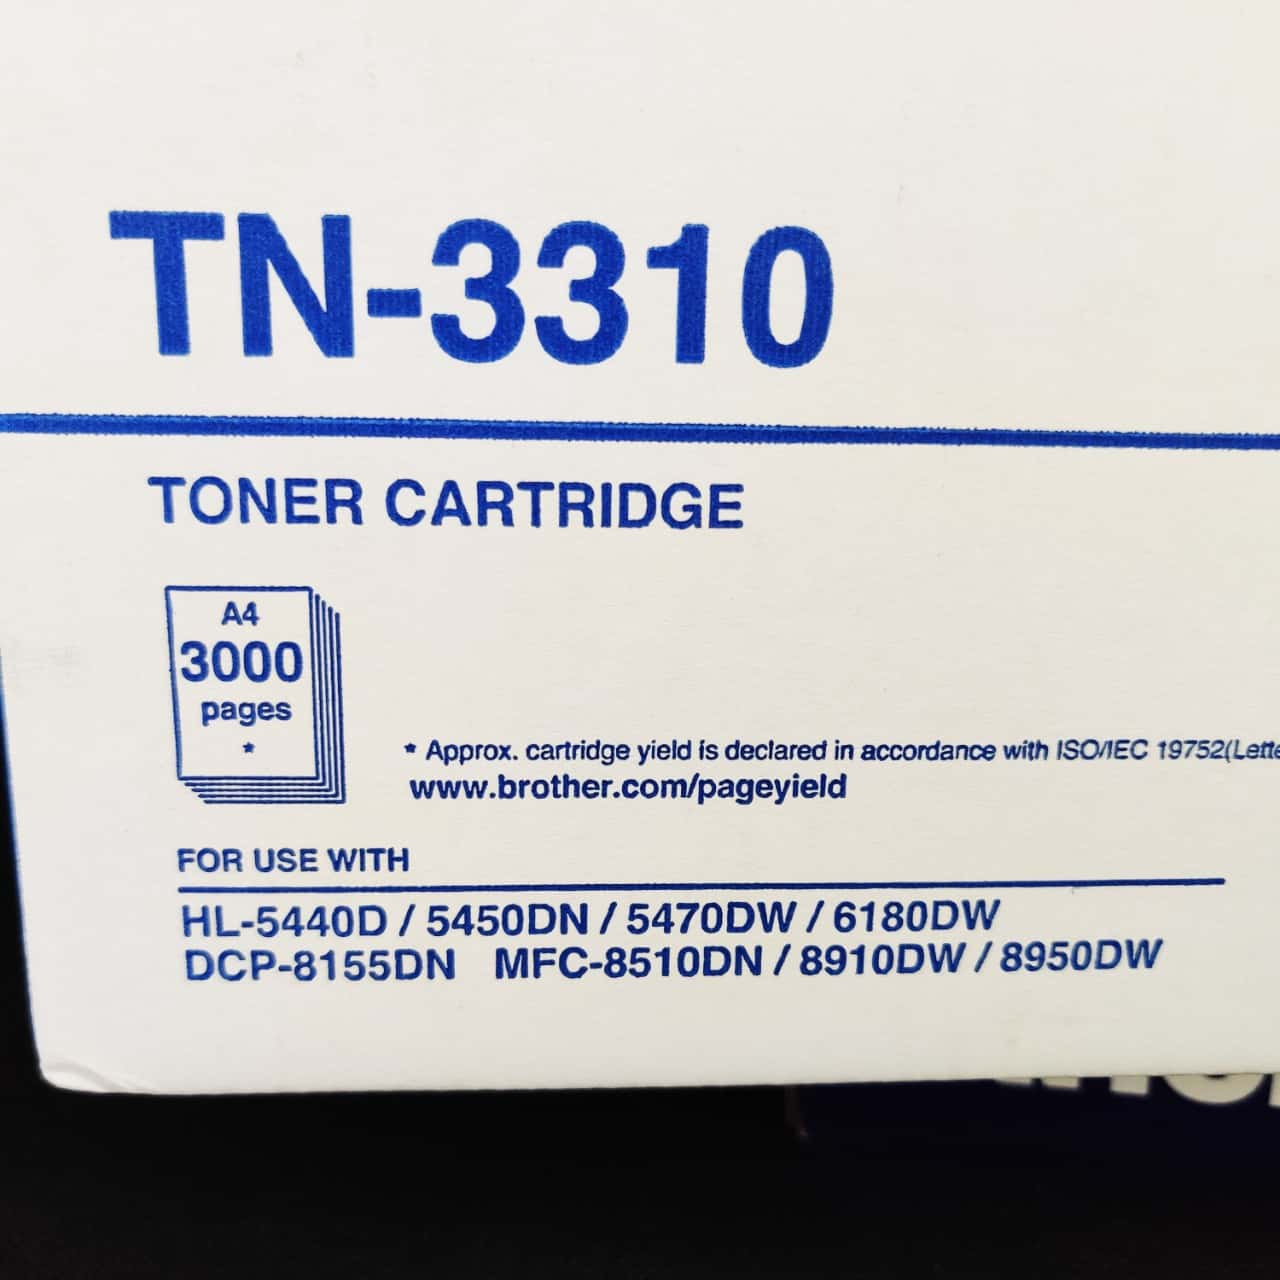 Brother TN-3310 Toner Cartridge for Brother Printers as per list on photo